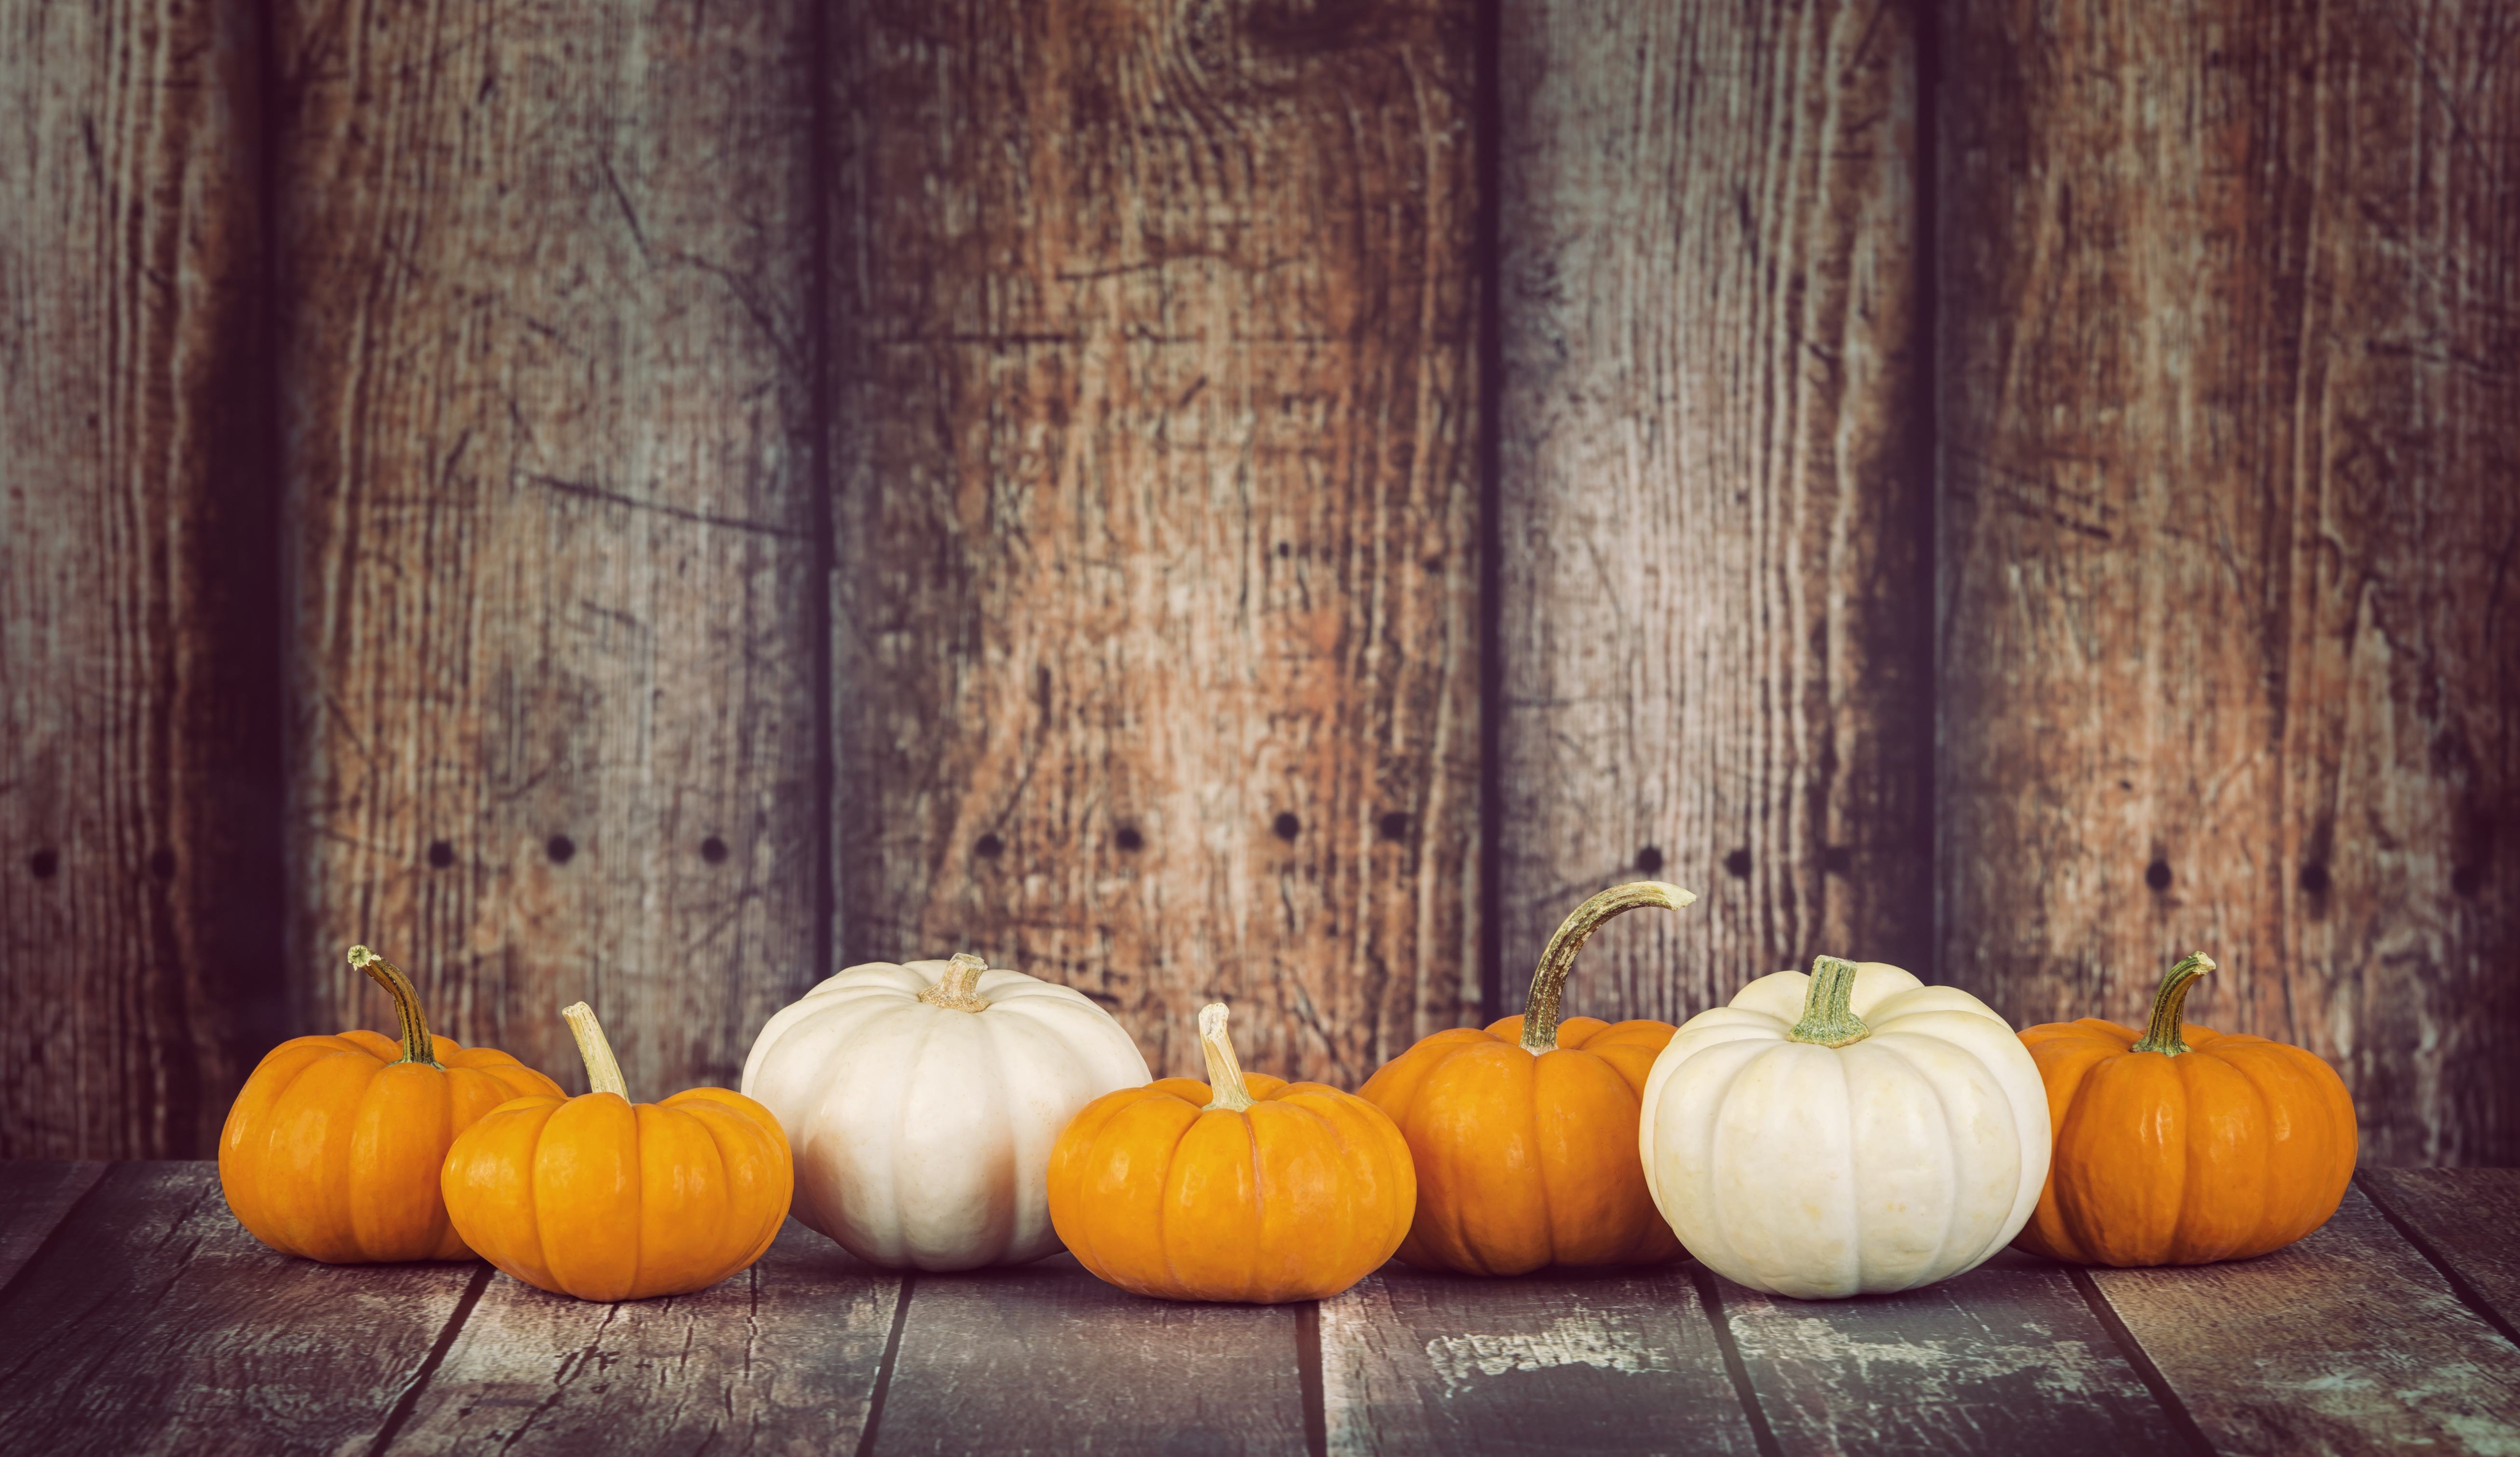 Mini pumpkins in a row against rustic wooden background, copy space